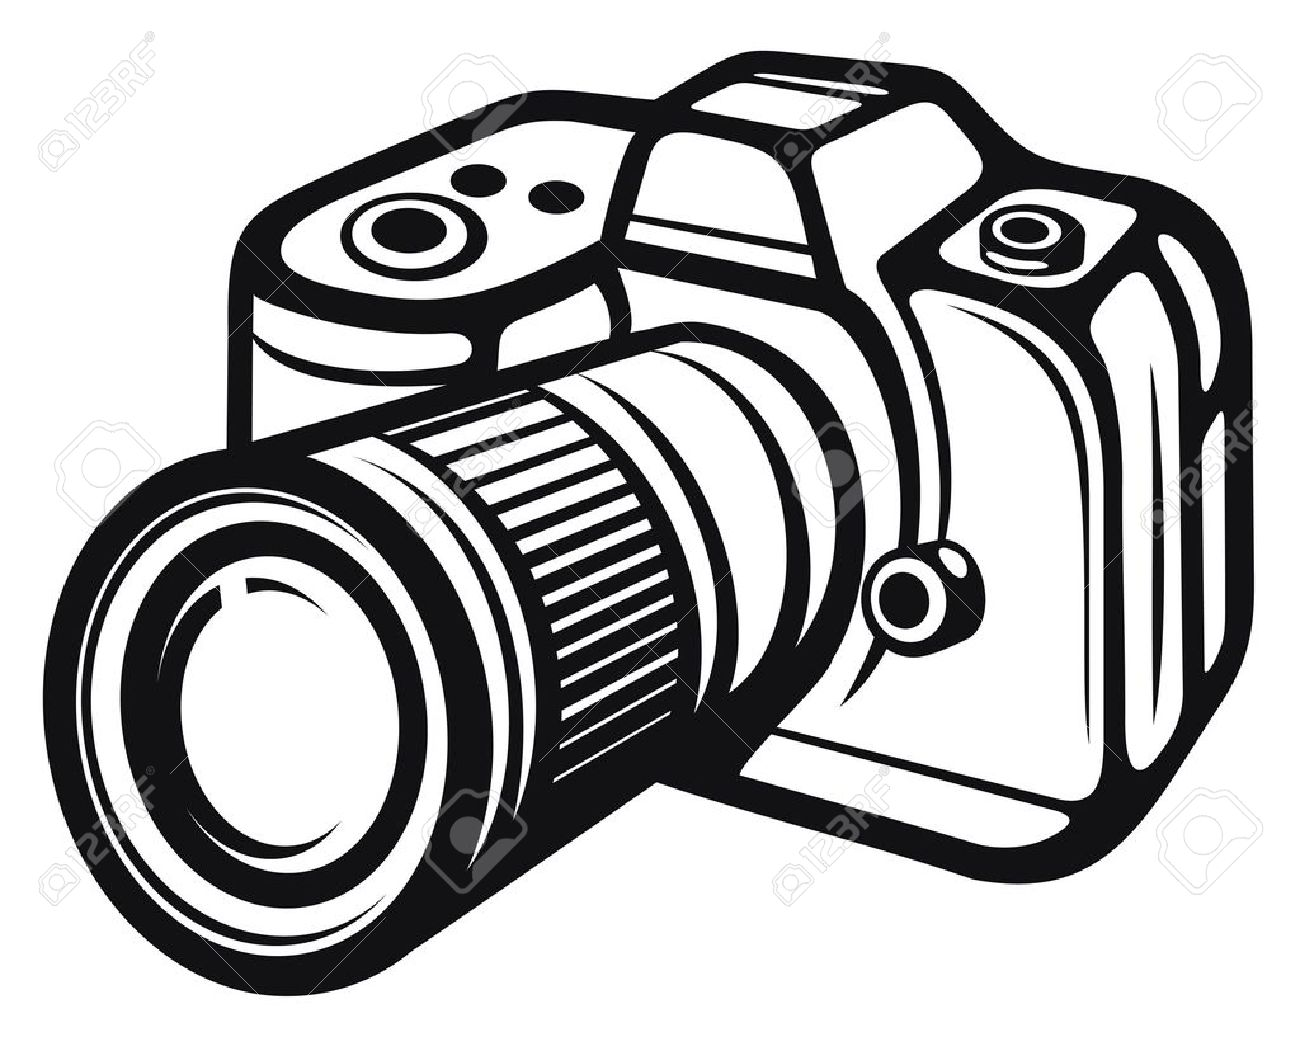 Camera black and white clipart svg library library Black And White Camera Clipart | Free download best Black And White ... svg library library